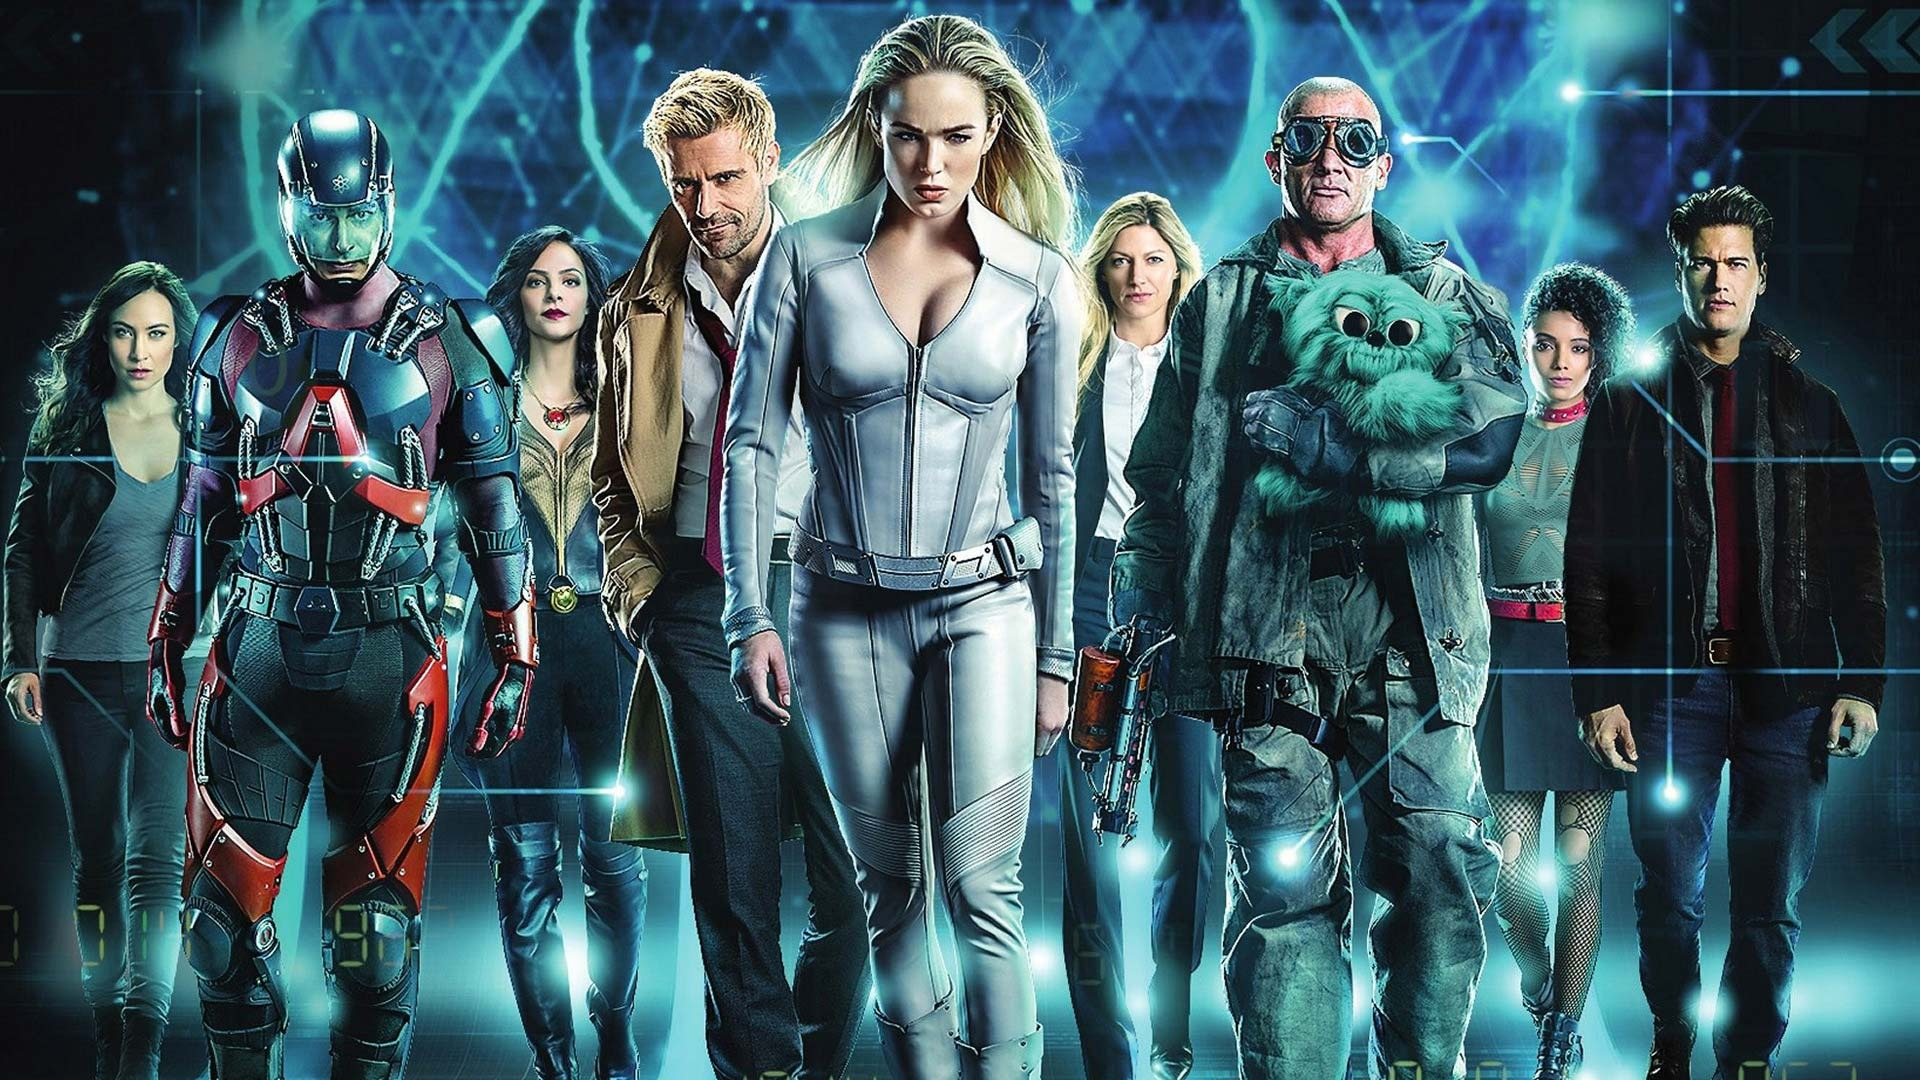 Tornano su Italia 1 Supergirl e DC's Legends of Tomorrow 1